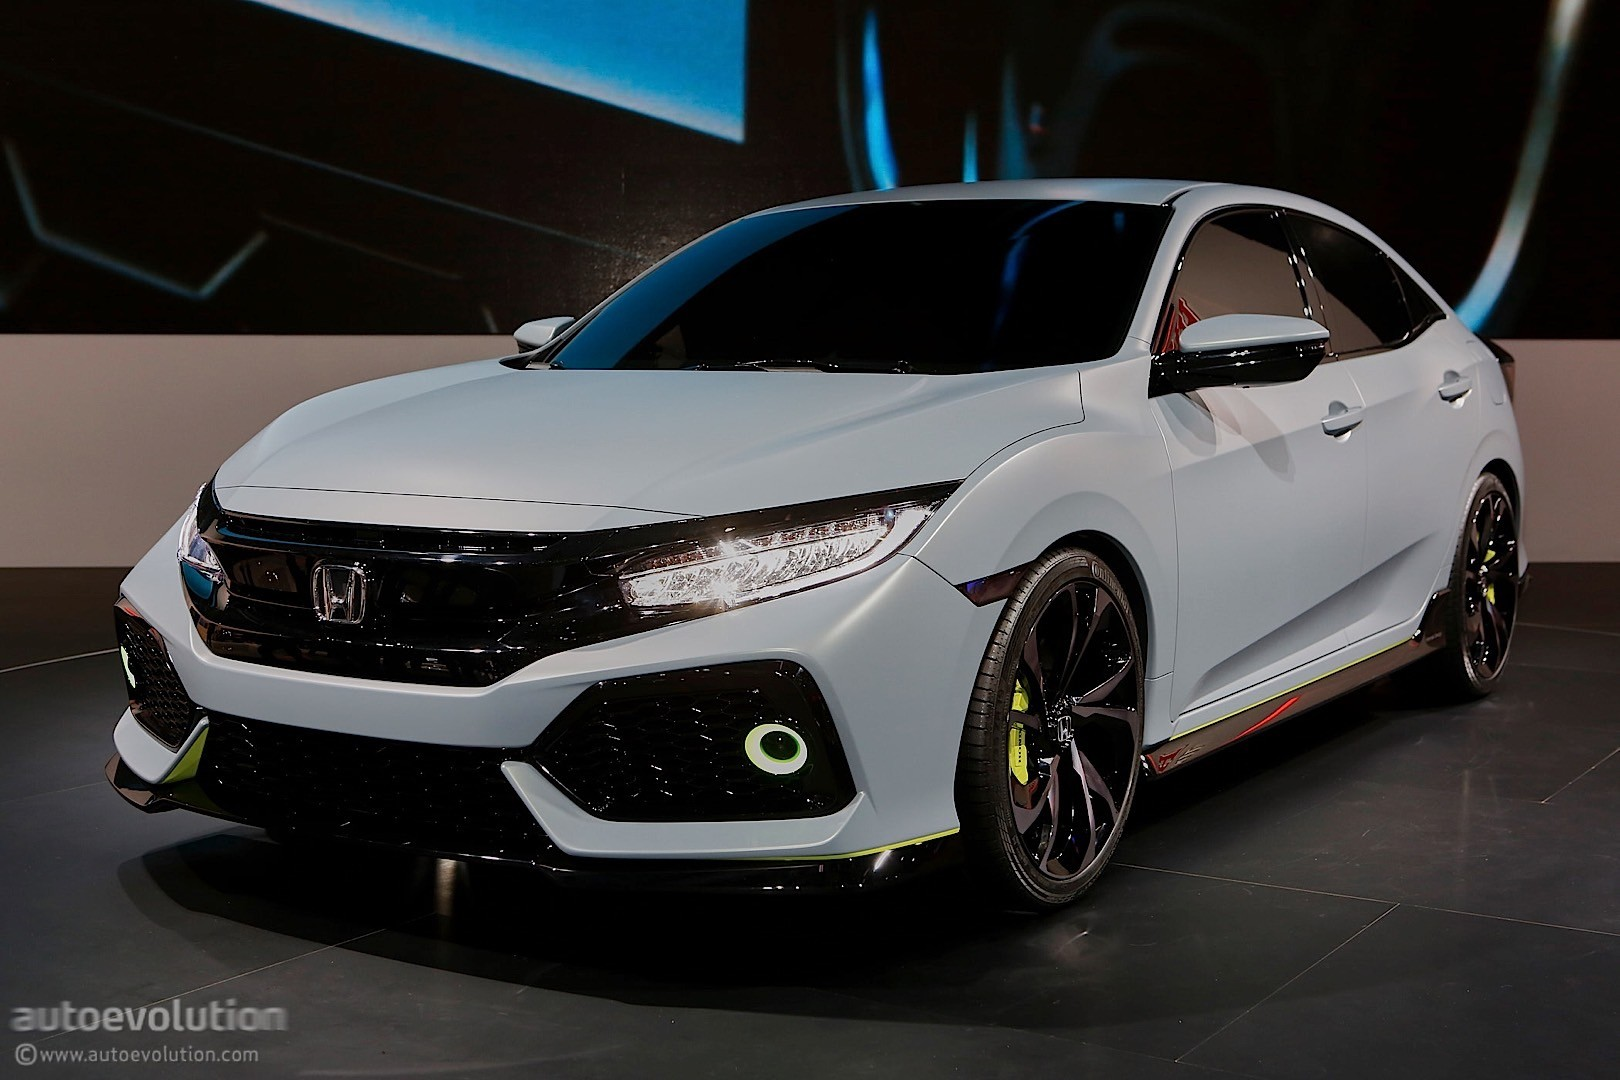 Every used car for sale comes with a free carfax report. Honda Civic Hatchback Coming to New York, Civic Si and New